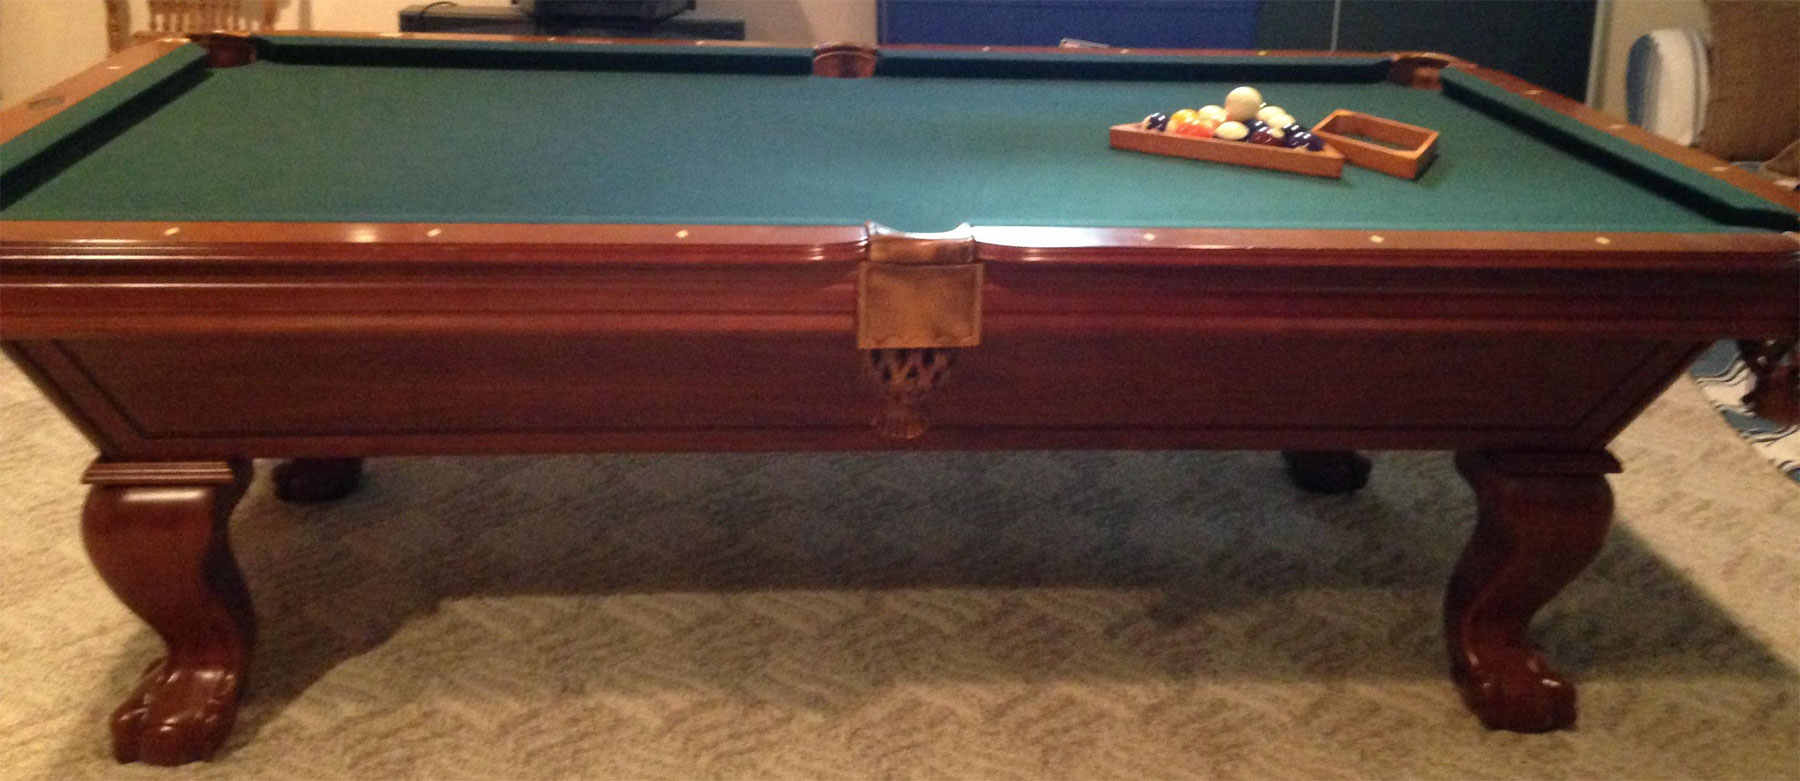 1999 8 Foot Imperial International Pool Table For Sale 800